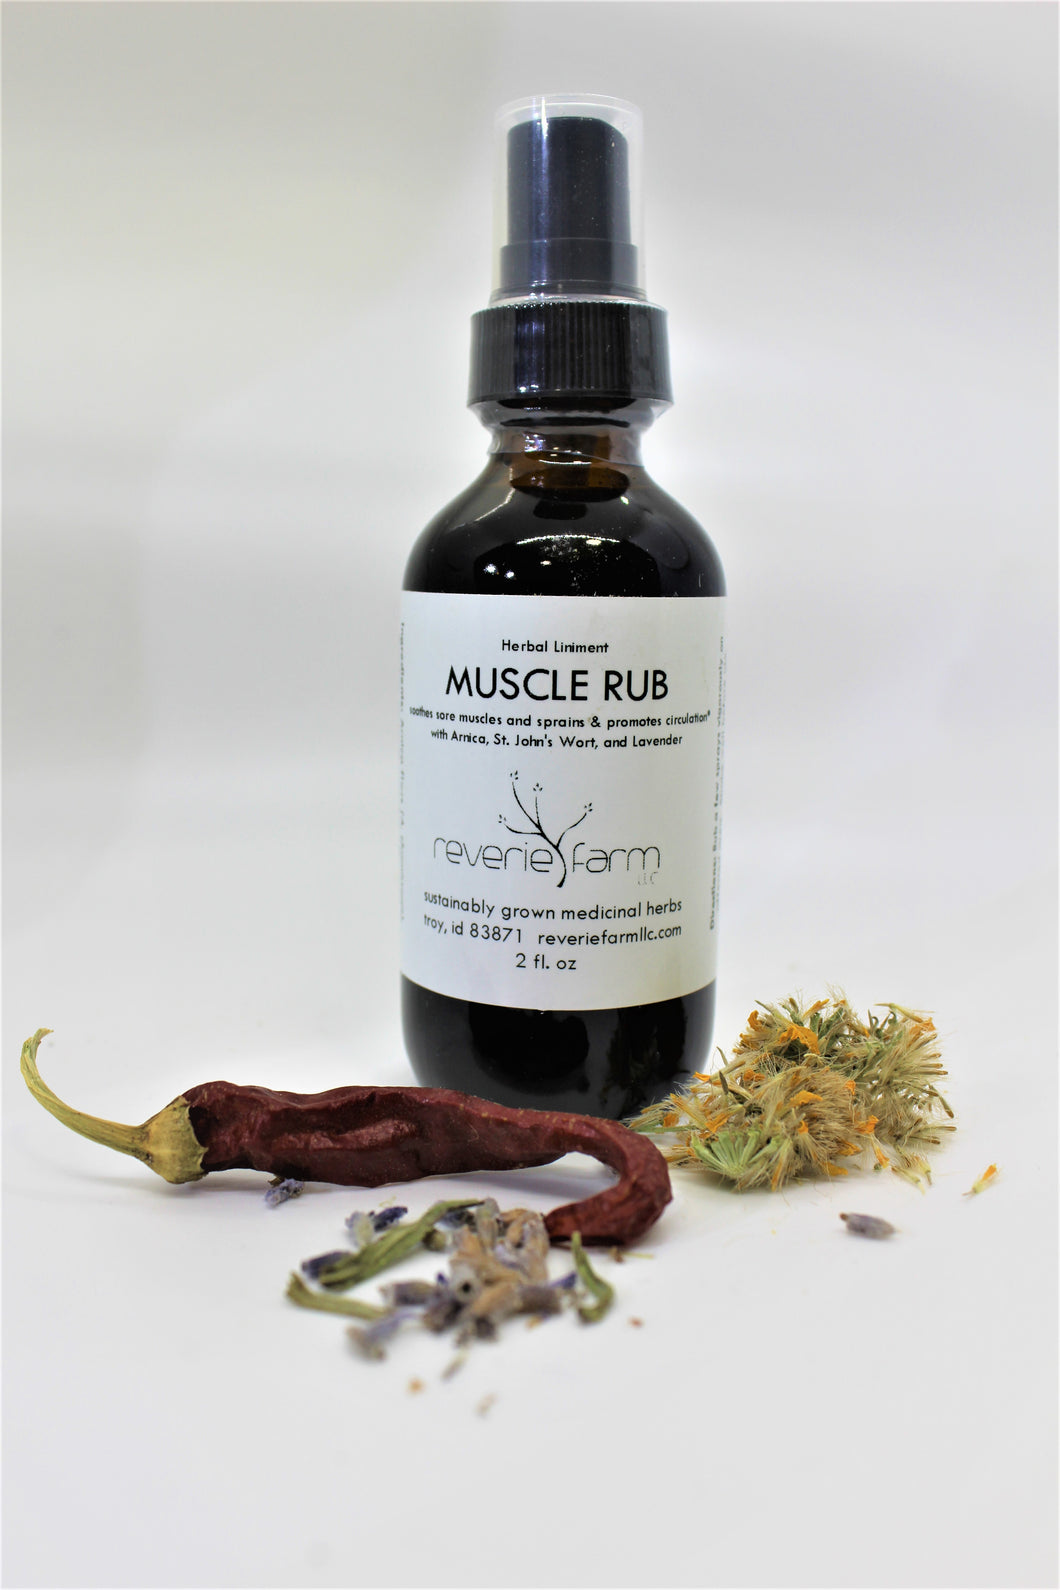 Herbal Muscle Rub, organic herbal liniment for sore muscles, sprains and promoting circulation, warming & cooling